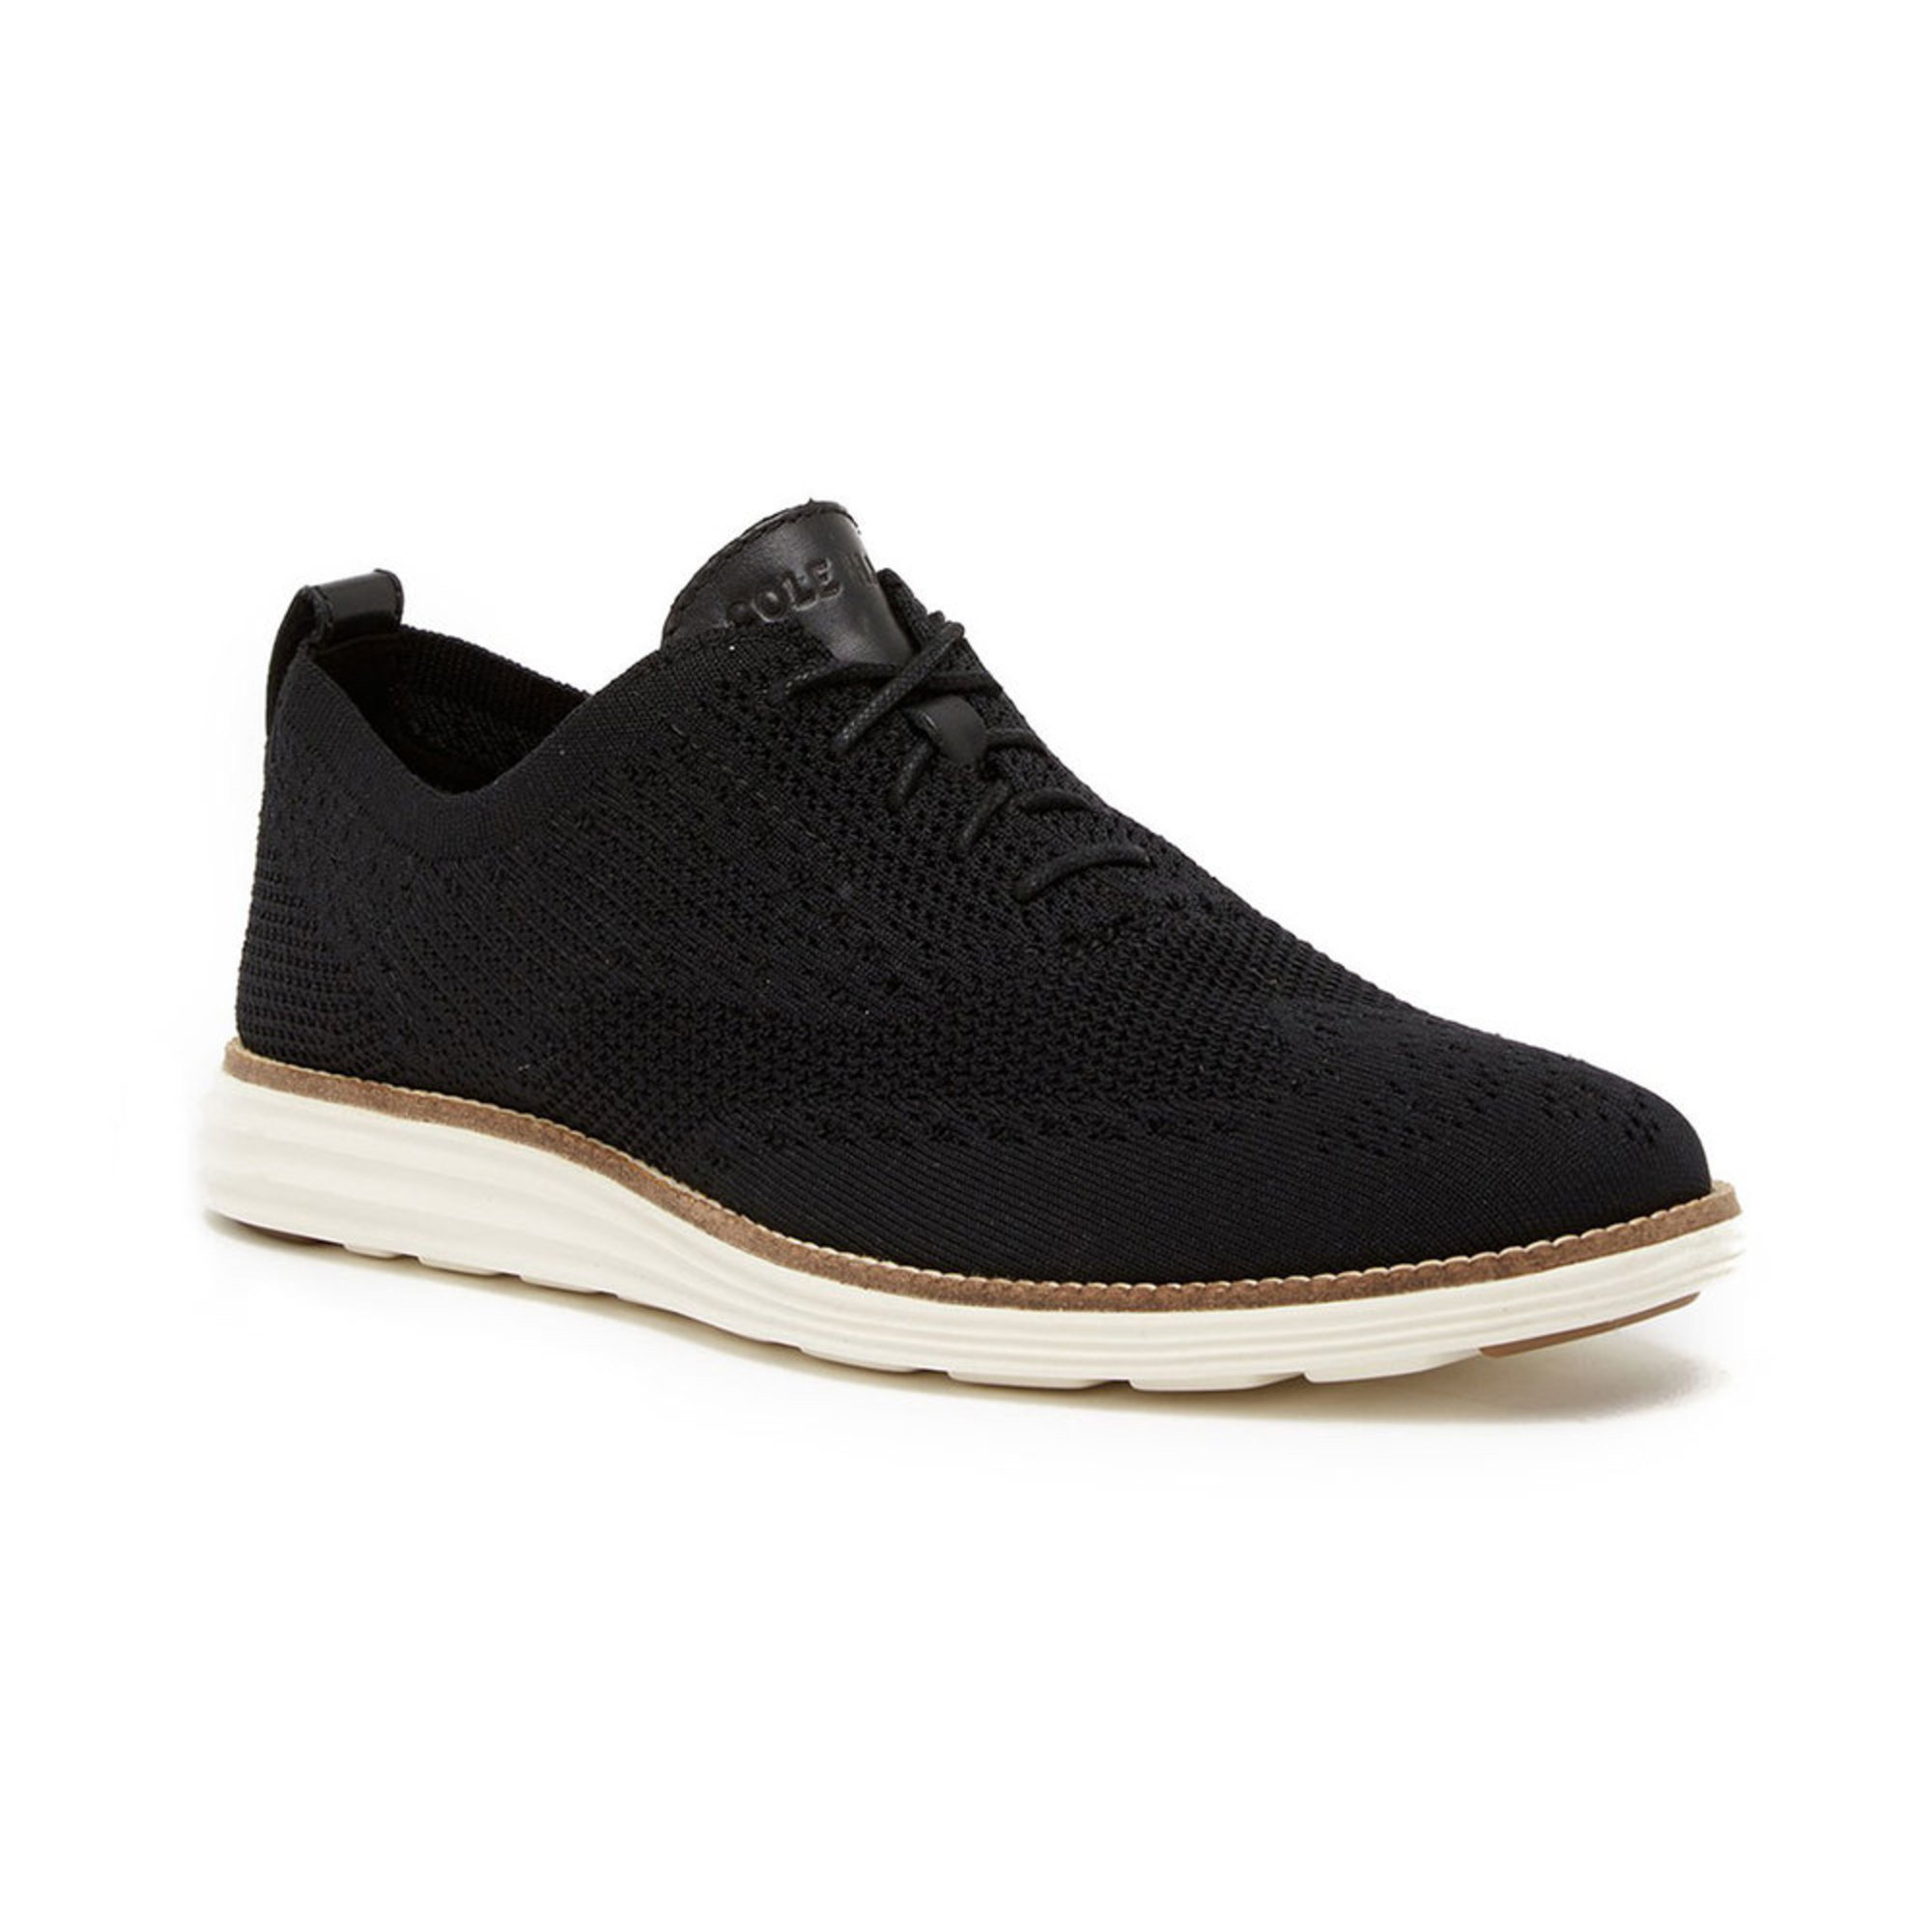 f17f93375f4be Cole Haan Men s Original Grand Shortwing Oxford. MSRP.  140.00. Product  Rating 0 Based on 0 reviews. 001